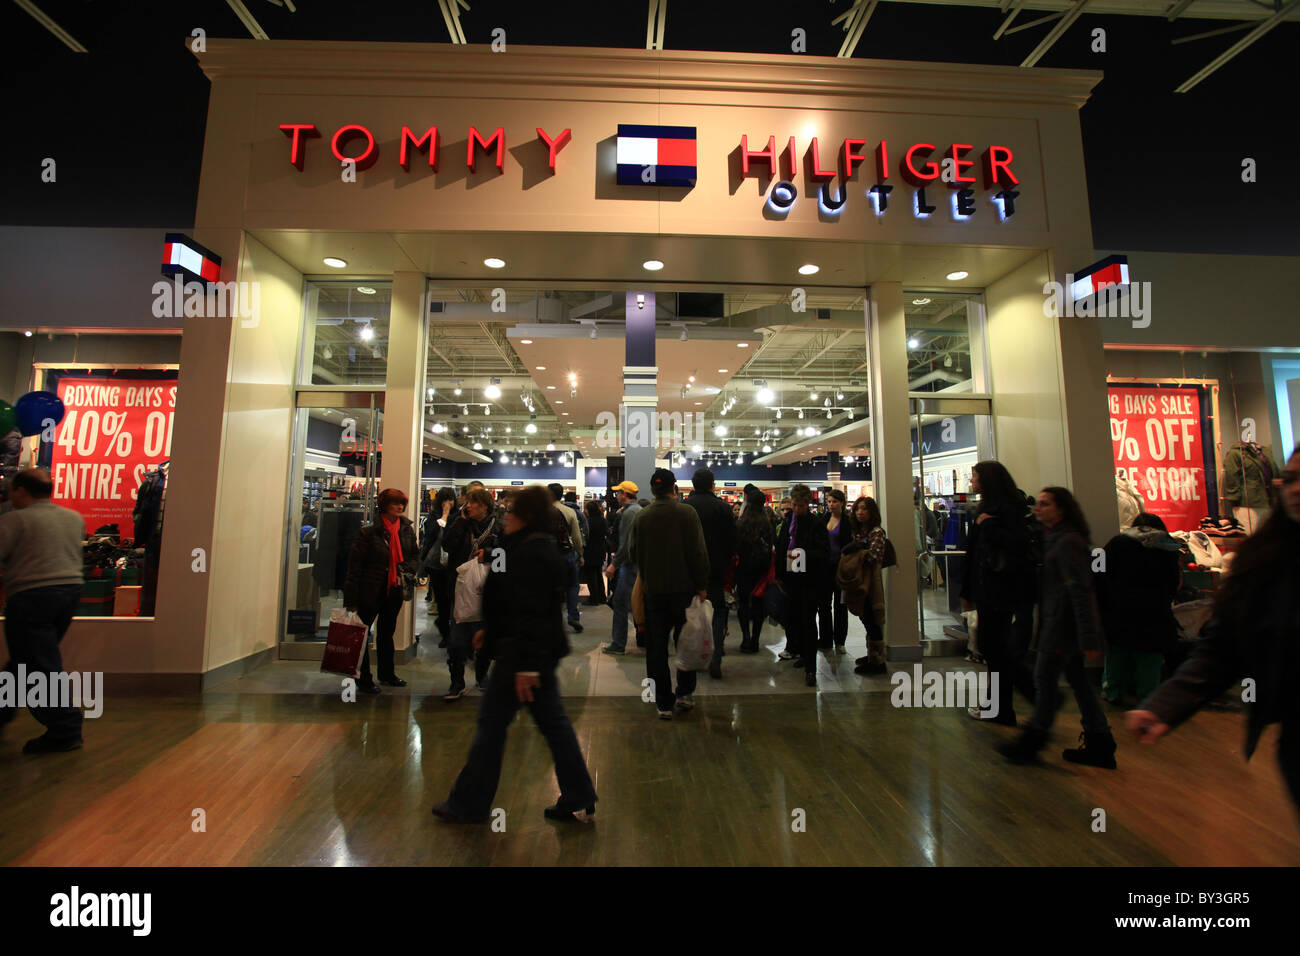 Tommy Hilfiger Outlets in Canada If you're in the area and have a bunch of time on your hands, these Tommy Hilfiger outlets might be worth checking out! Montreal: B Rue du Marche-Central, Montreal, QC H4N 1J8.